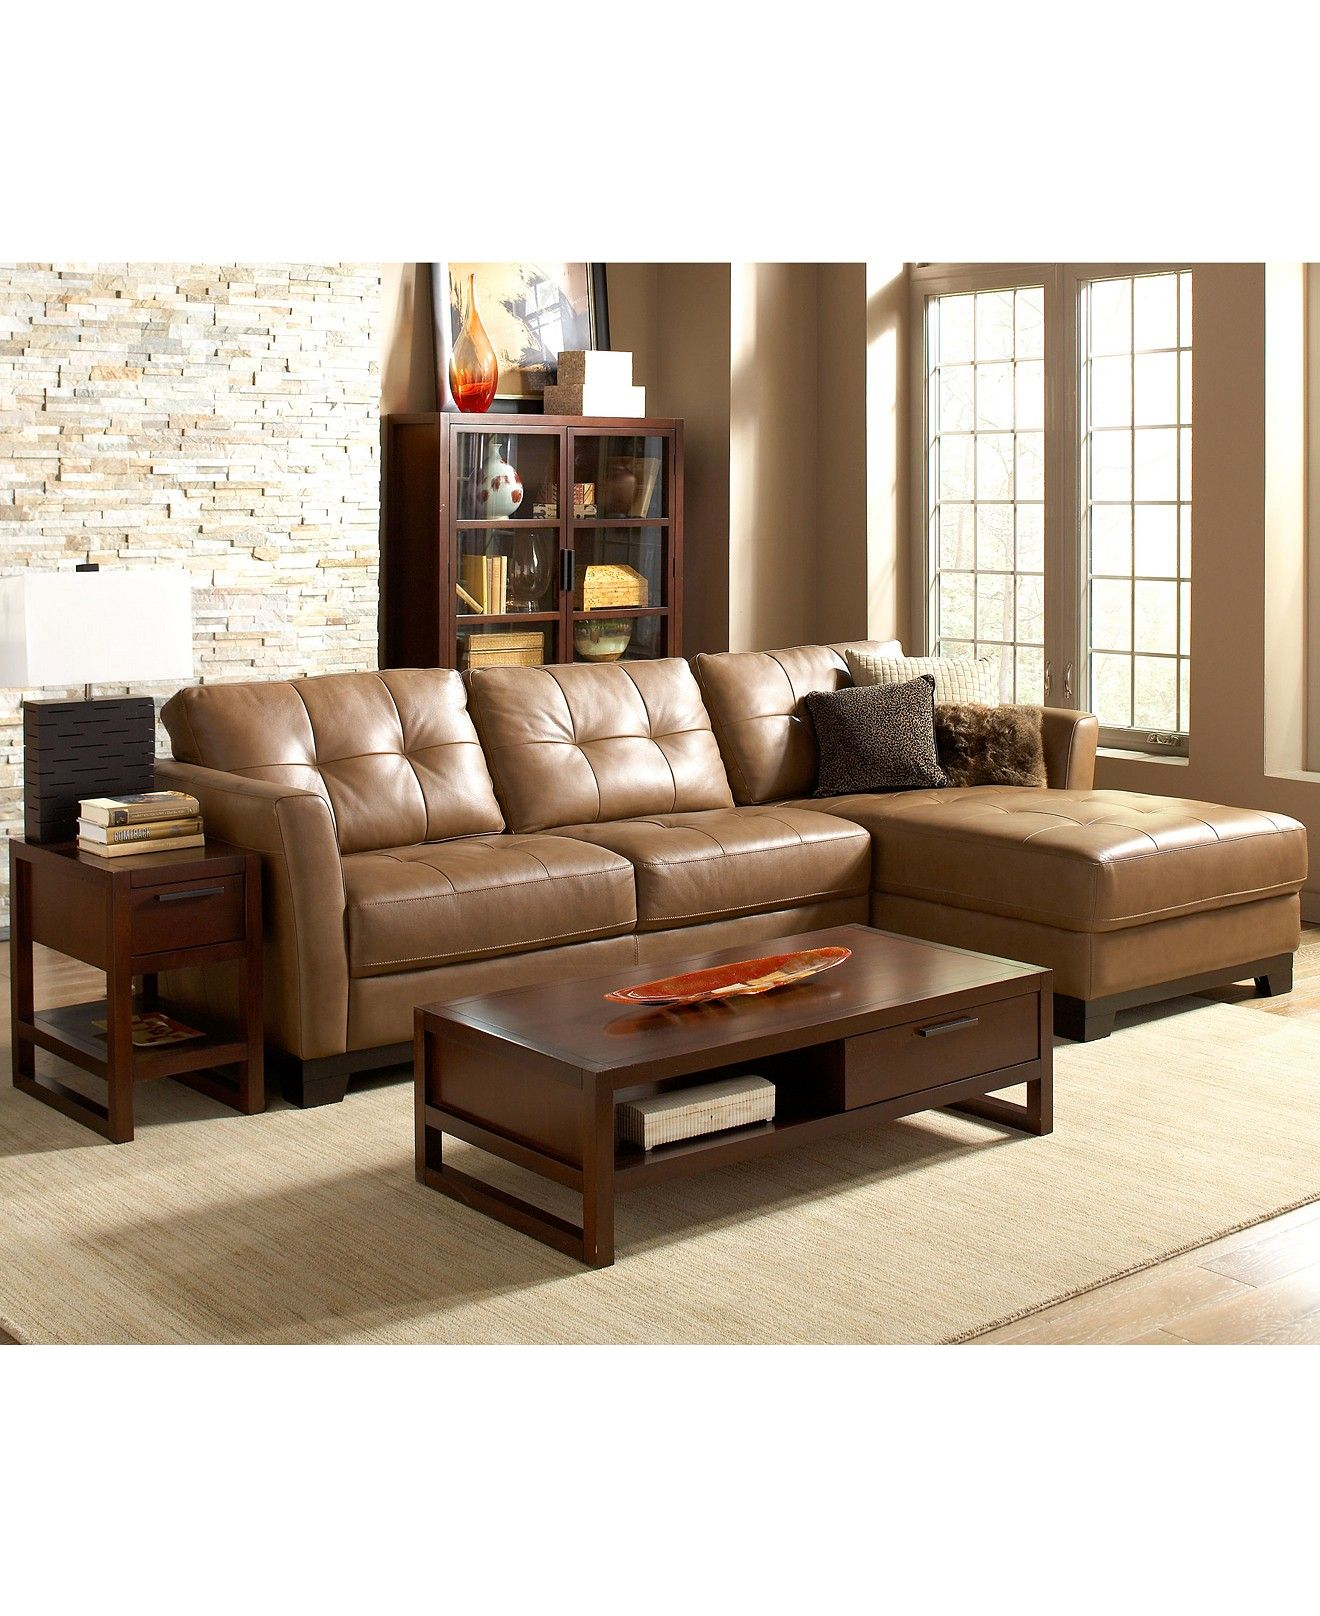 Apartment Sectional Martino Leather Chaise Sectional Sofa 2 Piece Apartment Sofa And